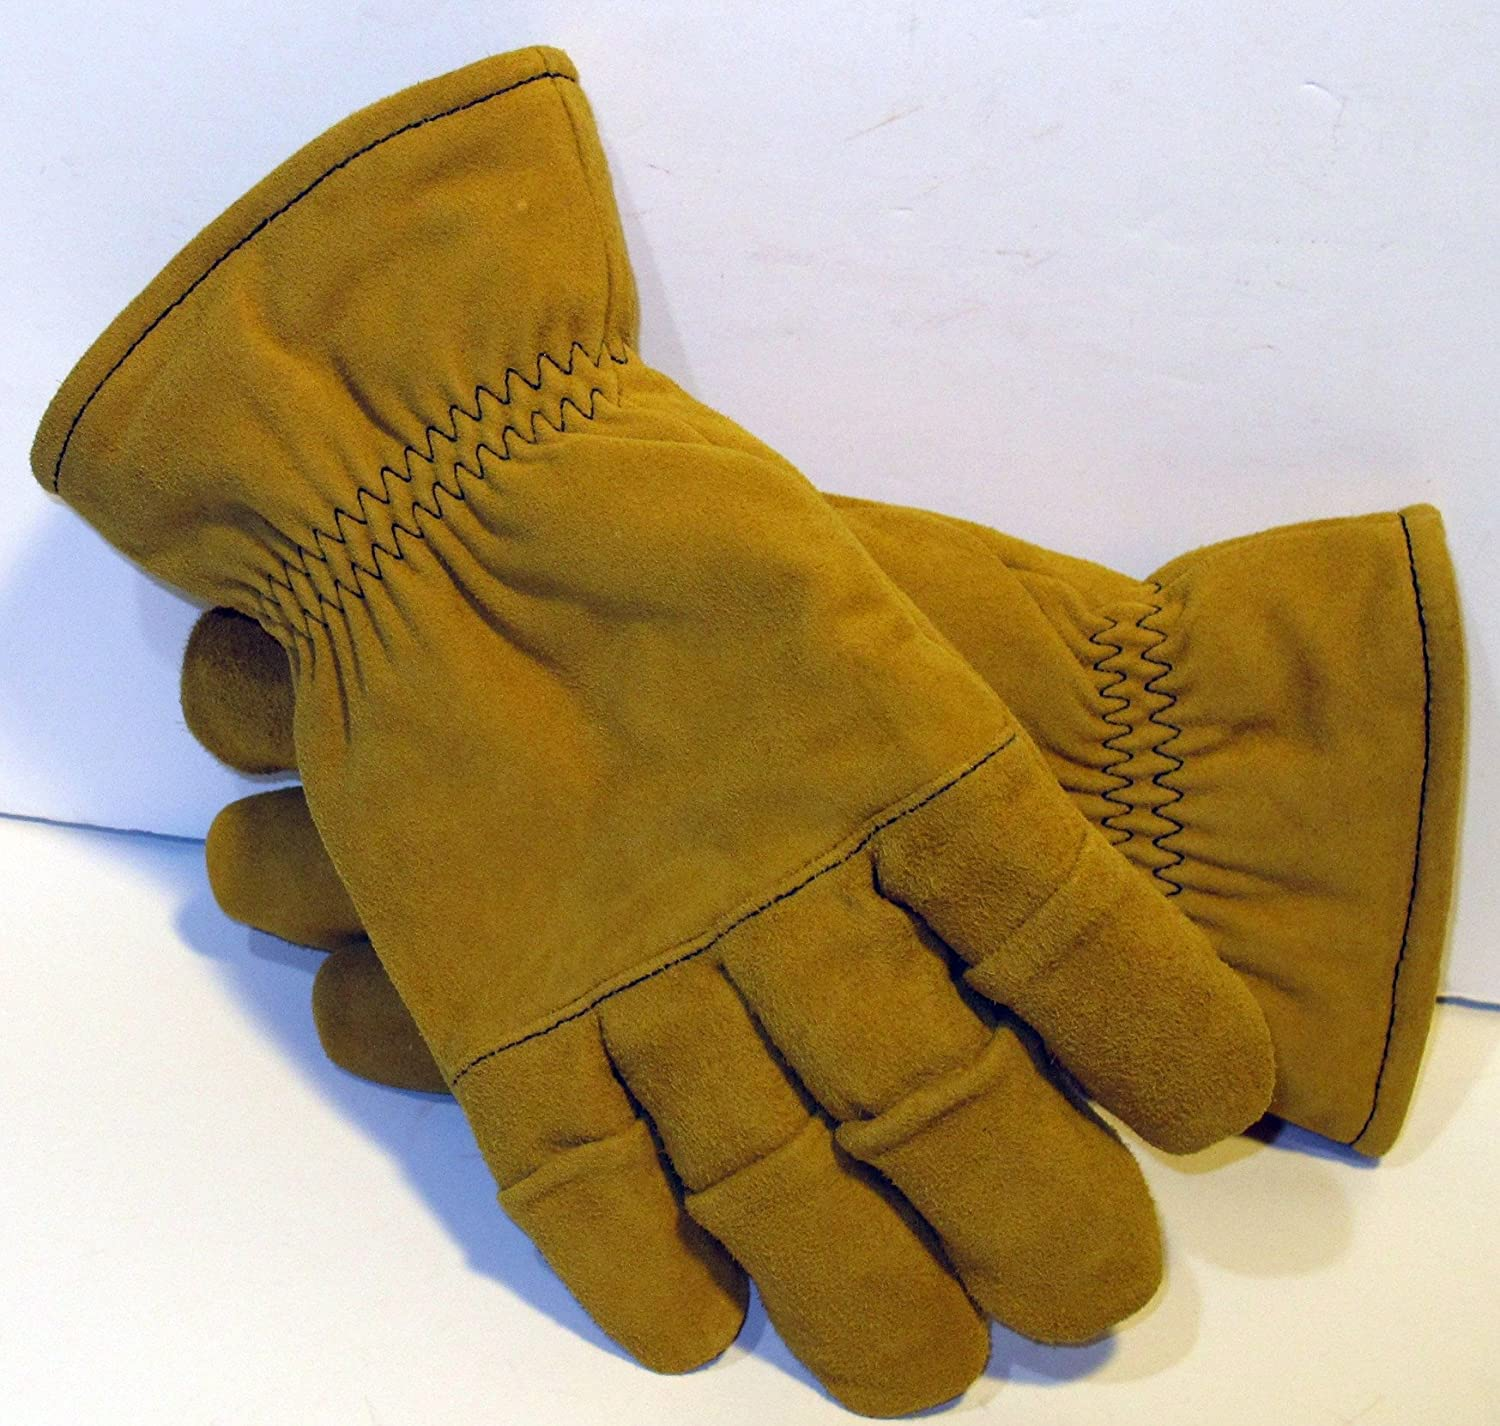 Size Medium - Tan Firefighter Heavy Duty Work Gloves NFPA Rated (B006JA3K4I)